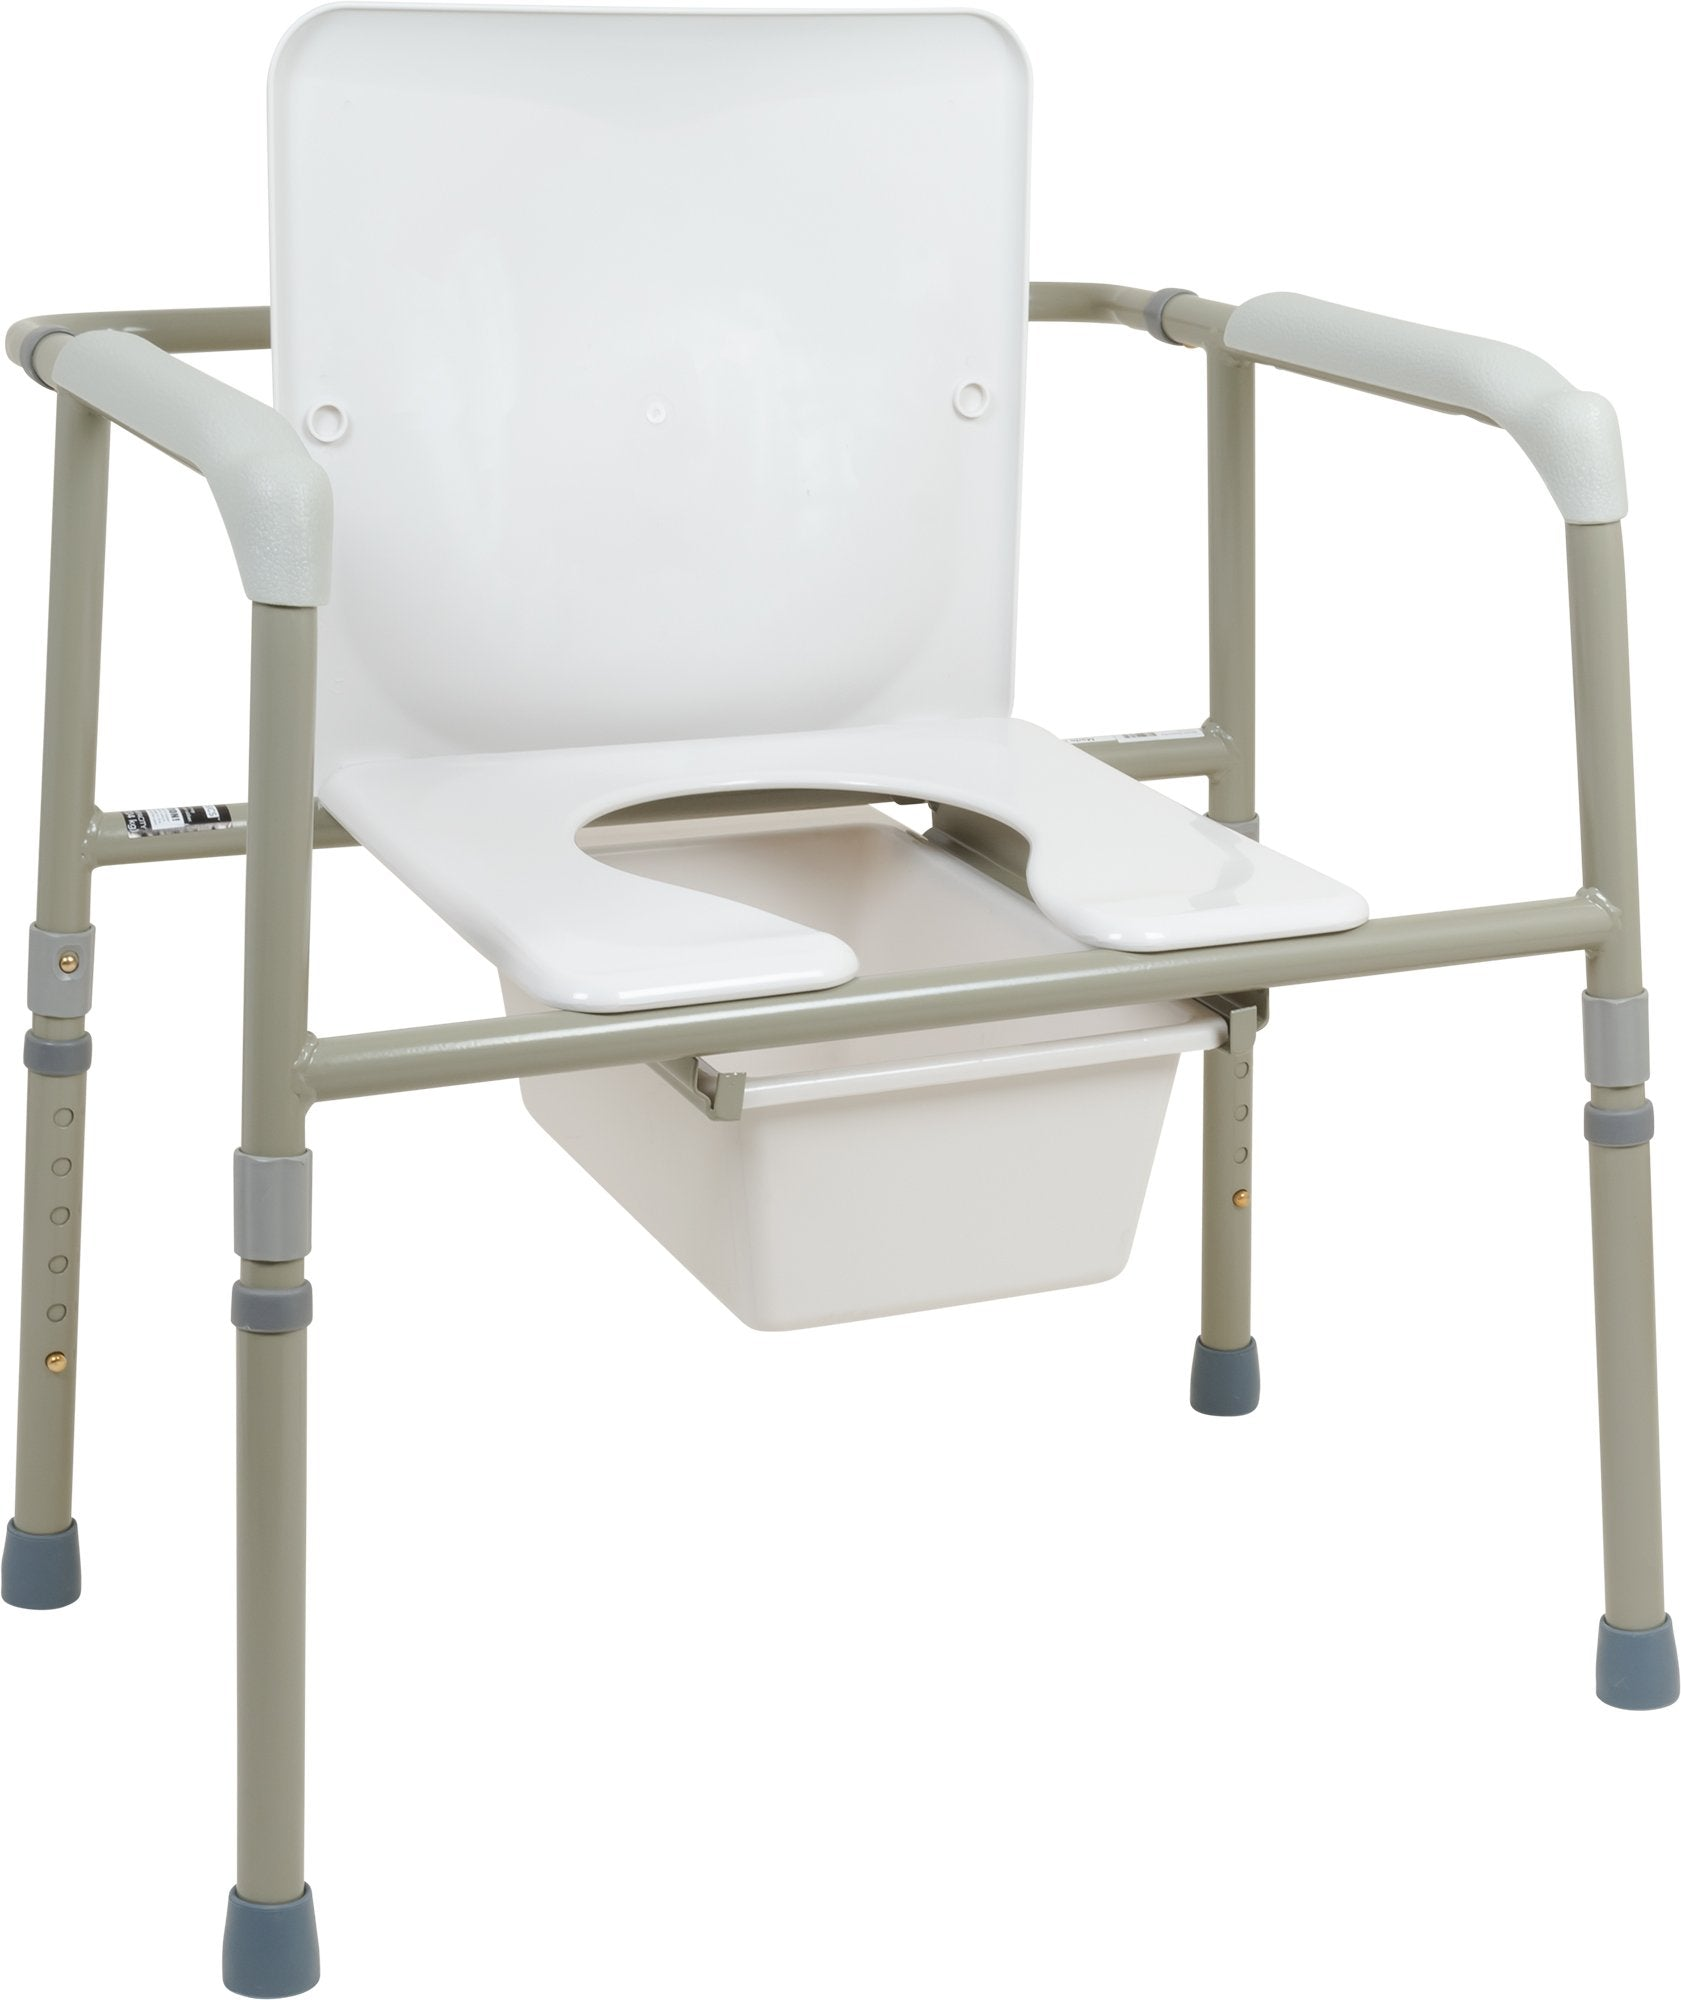 Bariatric Three-in-One Commode, 450lb Weight Capacity - US MED REHAB